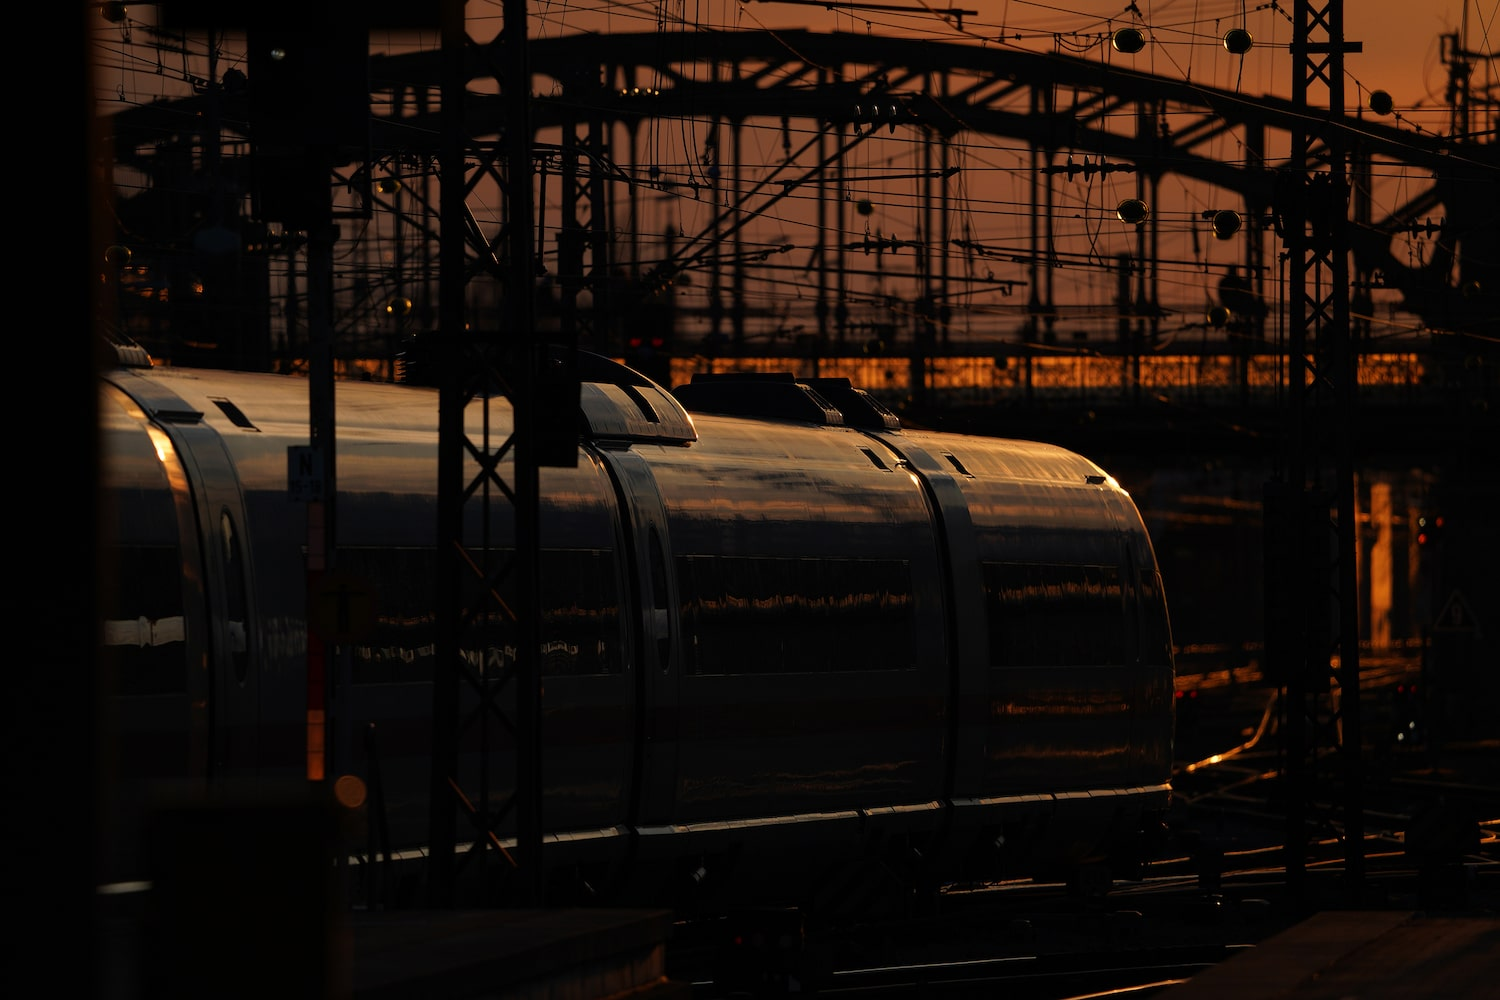 train-passing-through-in-the-golden-hour-alpha-7III